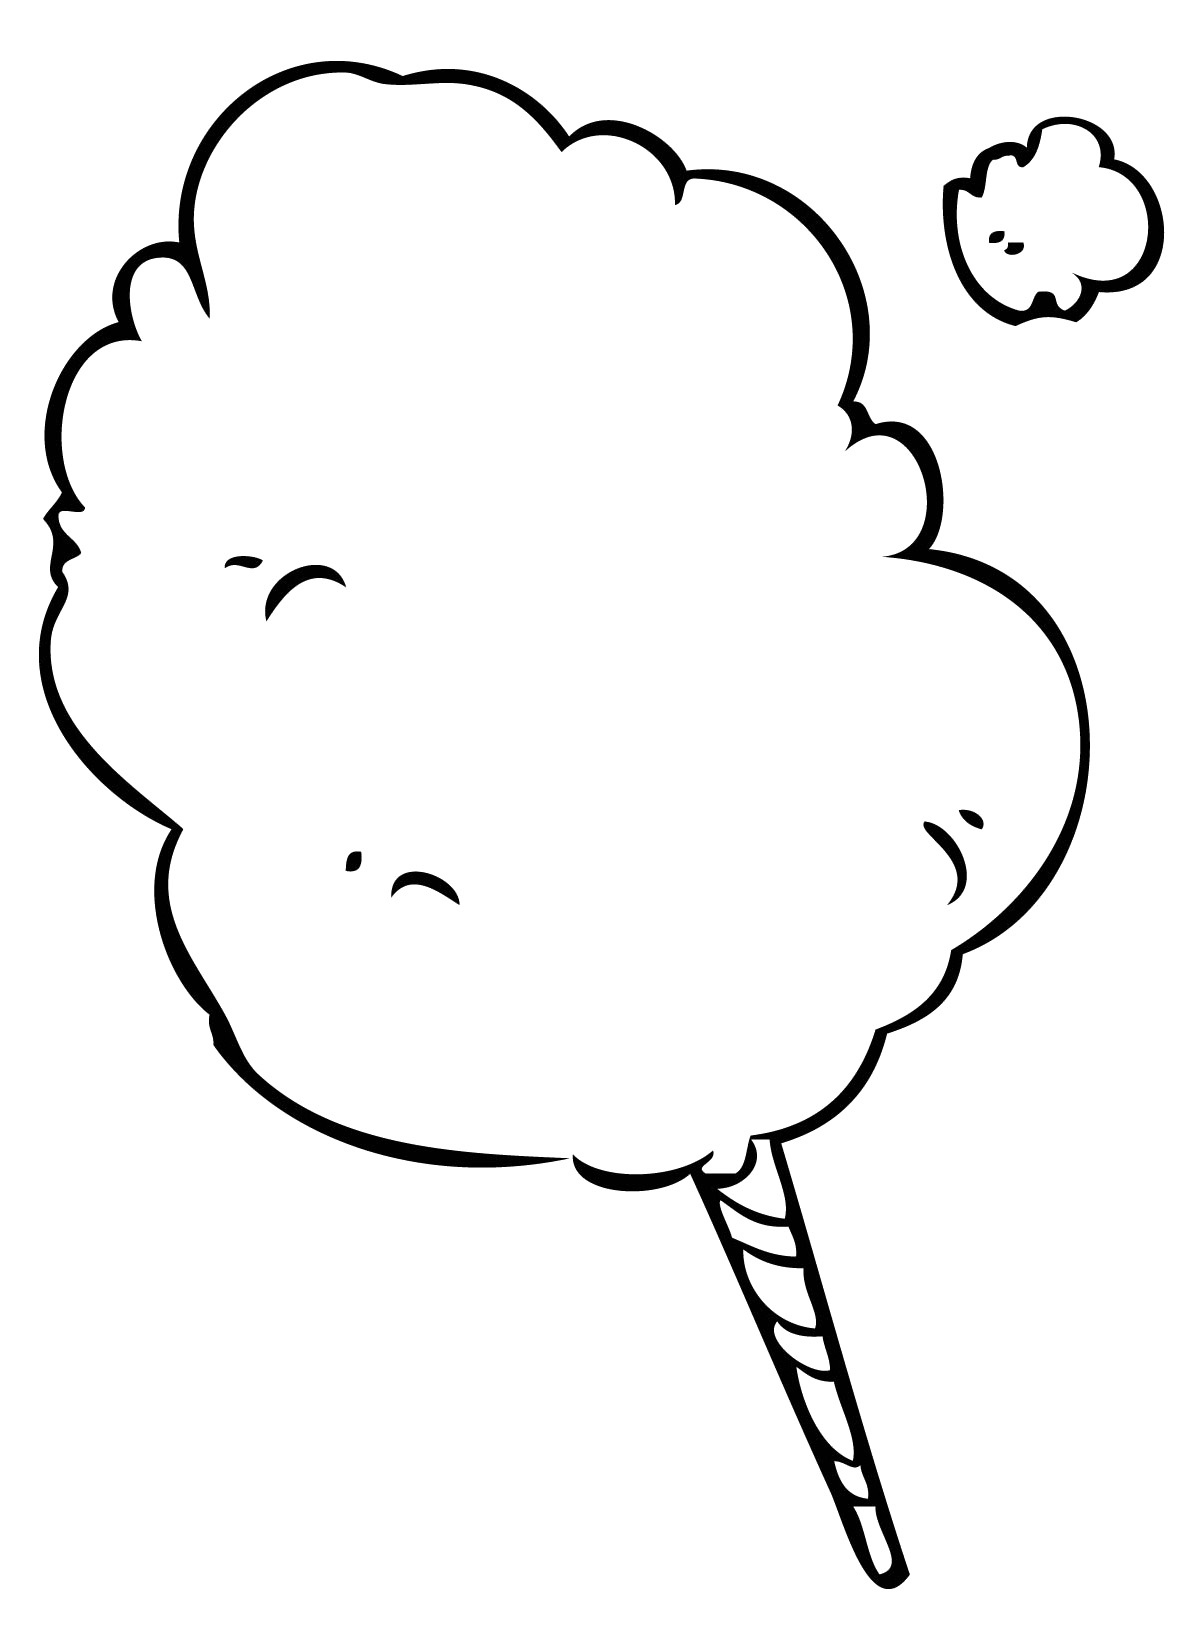 Cotton Candy Coloring Pages Free Download On Clipartmag